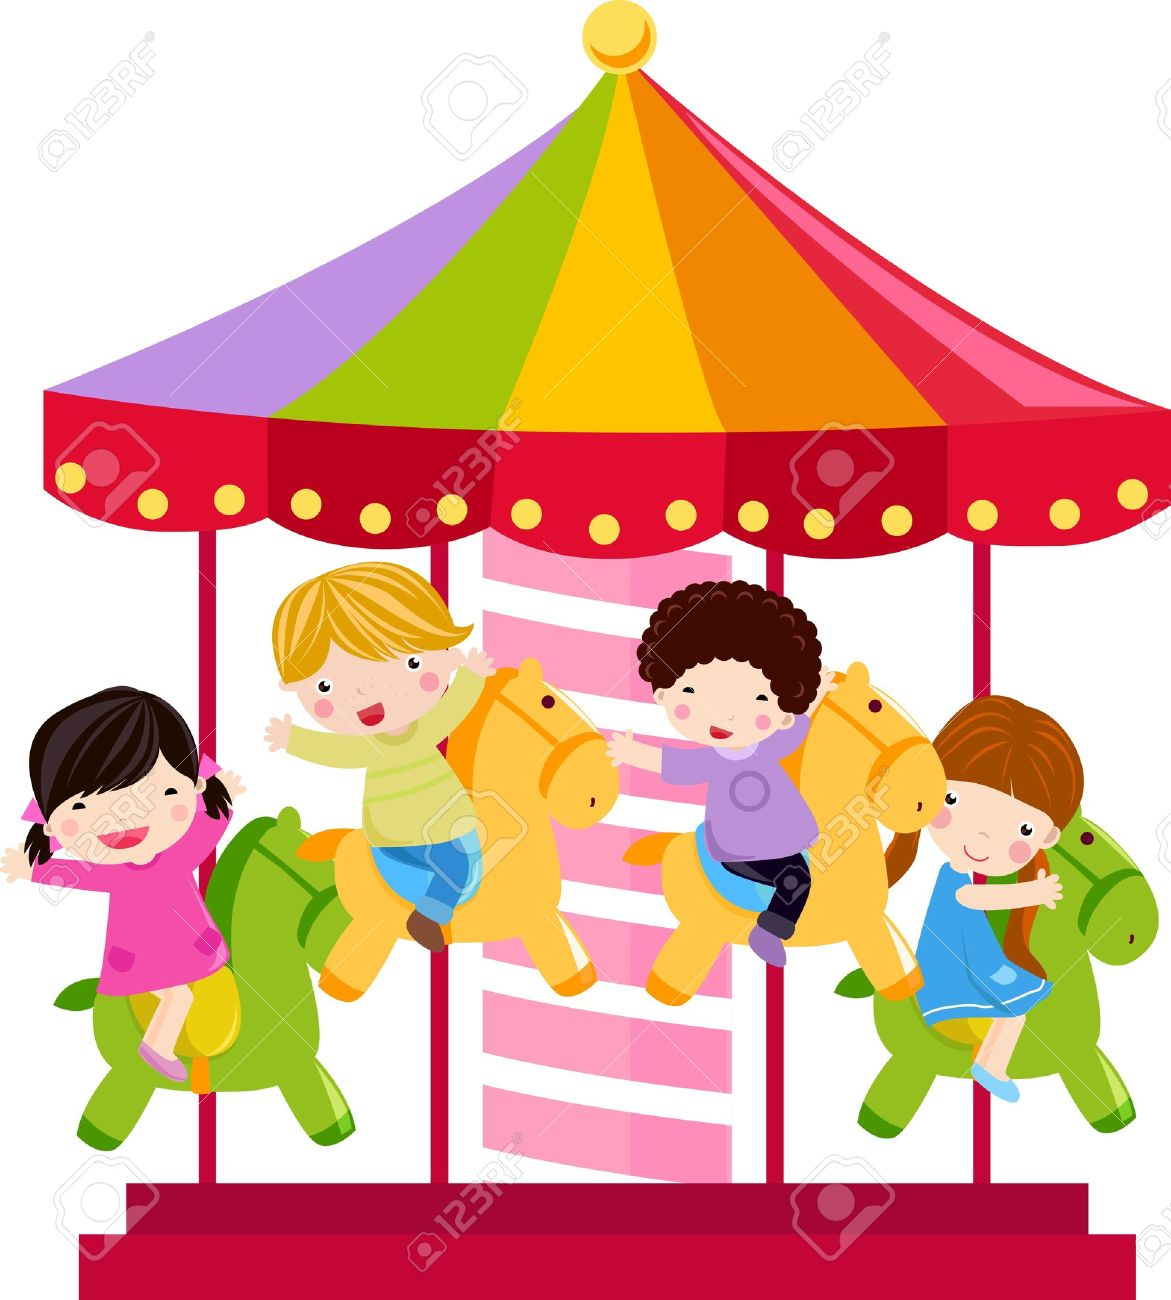 Carousel and children.